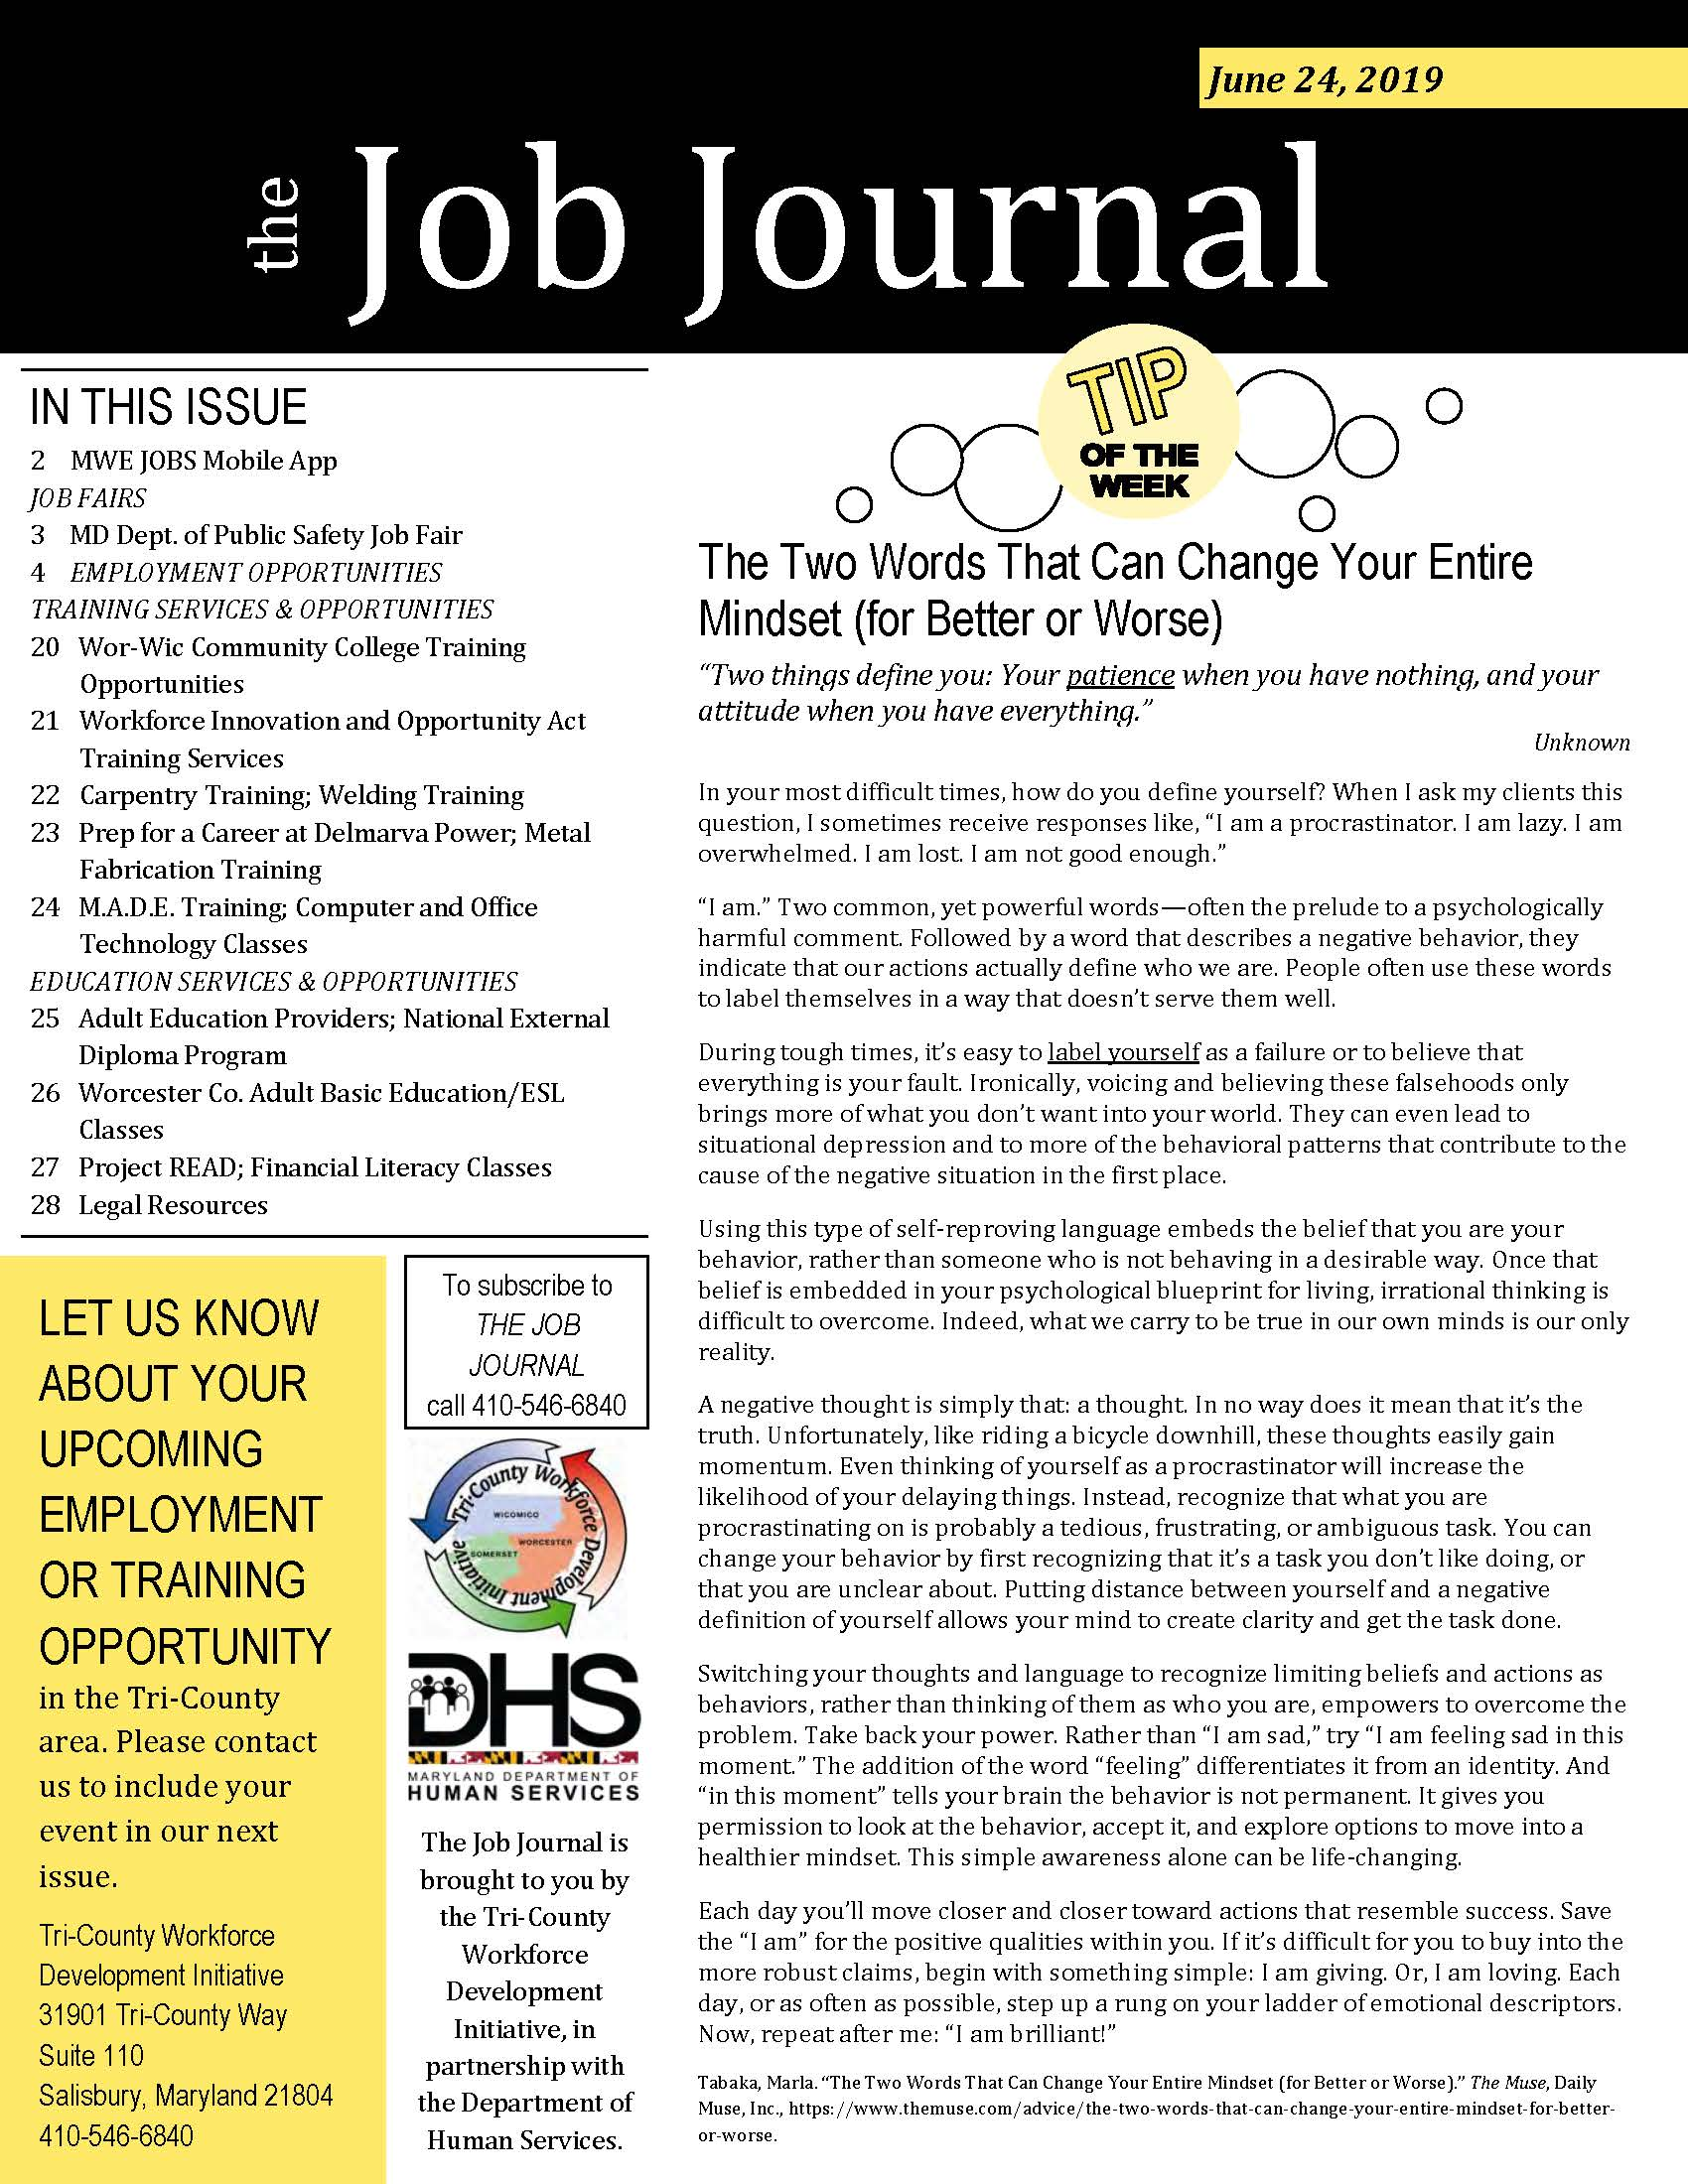 Cover page for the Job Journal 06.24.2019